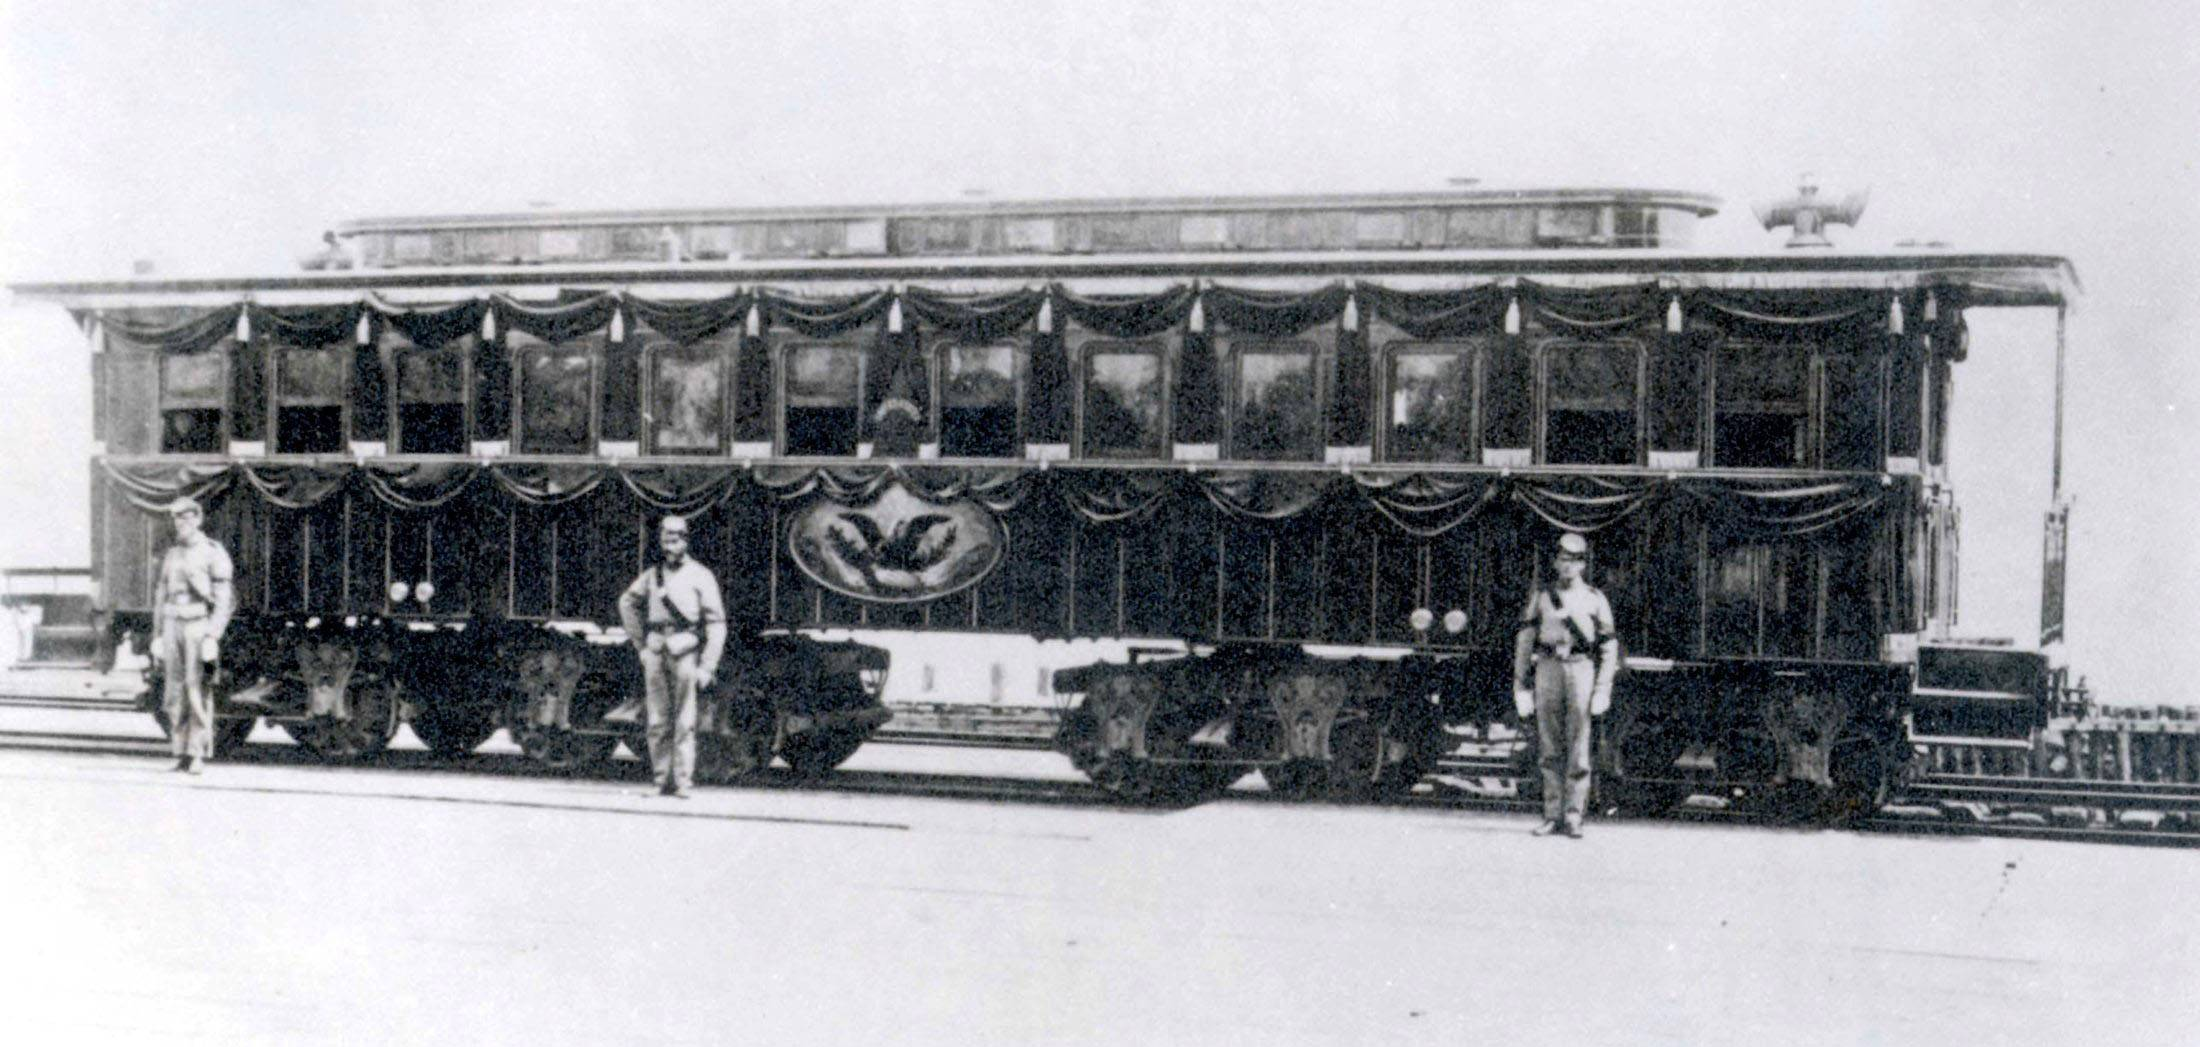 The funeral train that carried Abraham Lincoln's body across the country after his death in 1865 is shown in this undated photo. Master mechanic David Kloke of Bartlett, whose shop is in Elgin, is working on building a replica of the funeral train car.